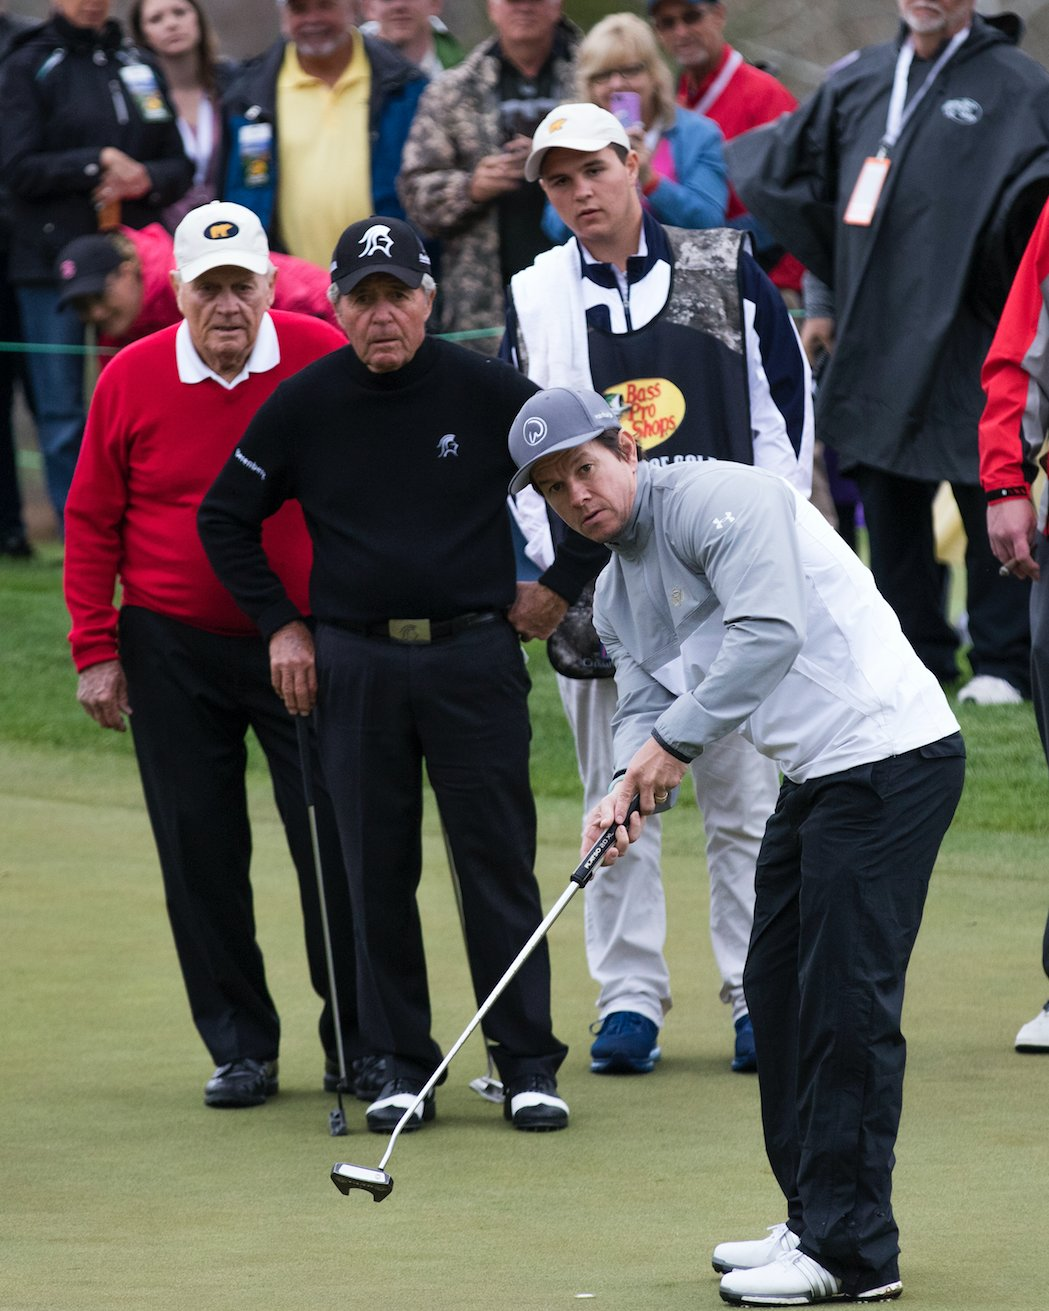 Mark Wahlberg returns with the likes of Gary Player and Jack Nicklaus.